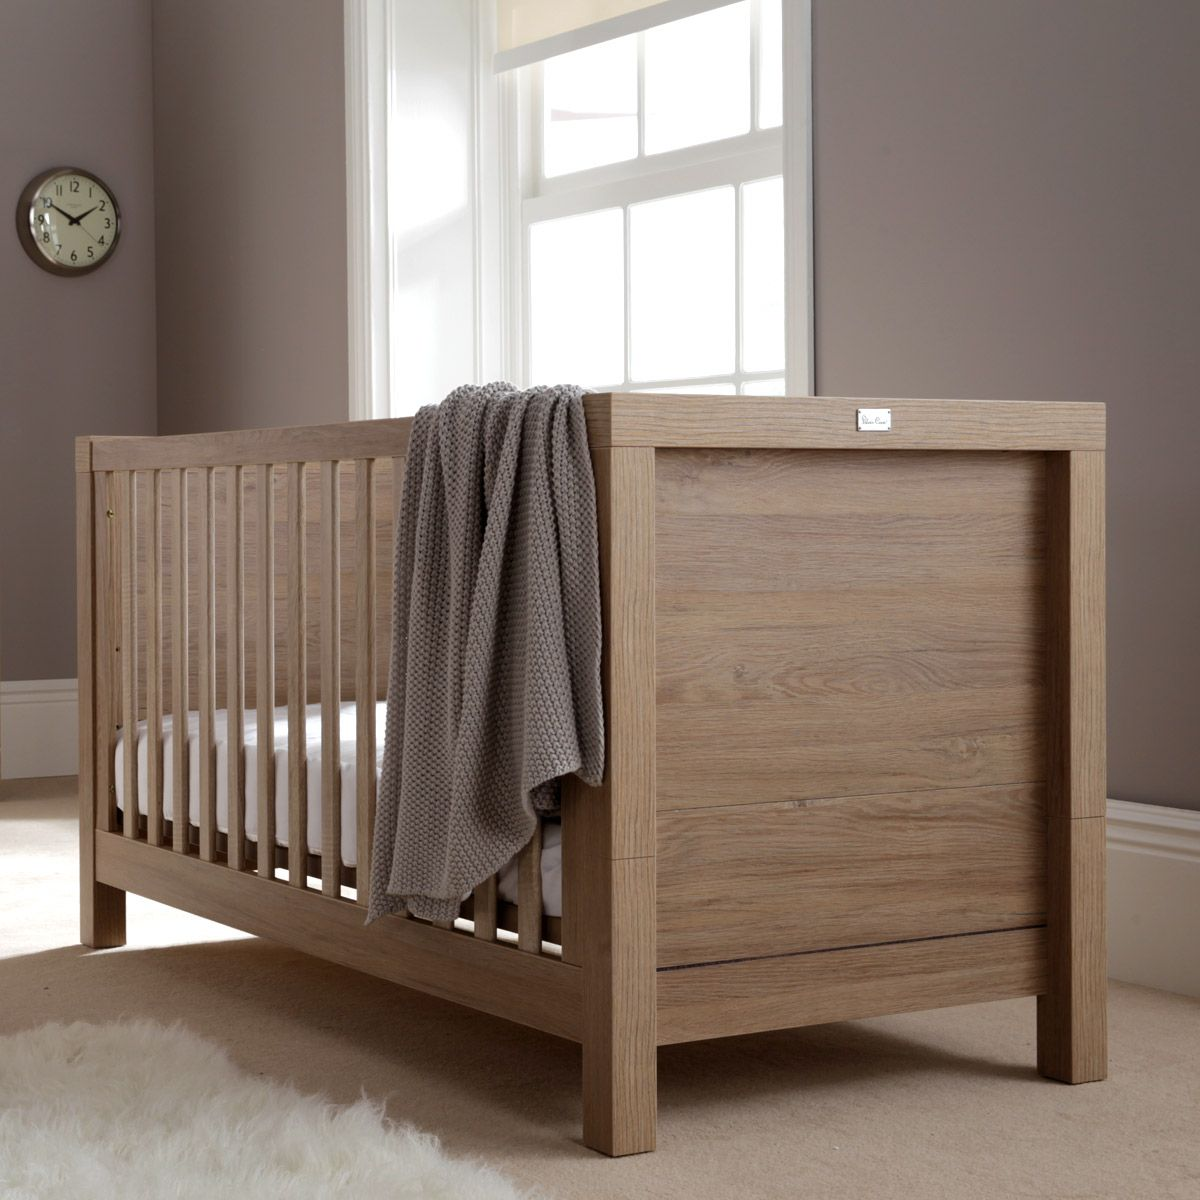 the statement portobello cot bed from silver cross this stylish  - modern nursery furniture · the statement portobello cot bed from silvercross this stylish cot bed has  bed